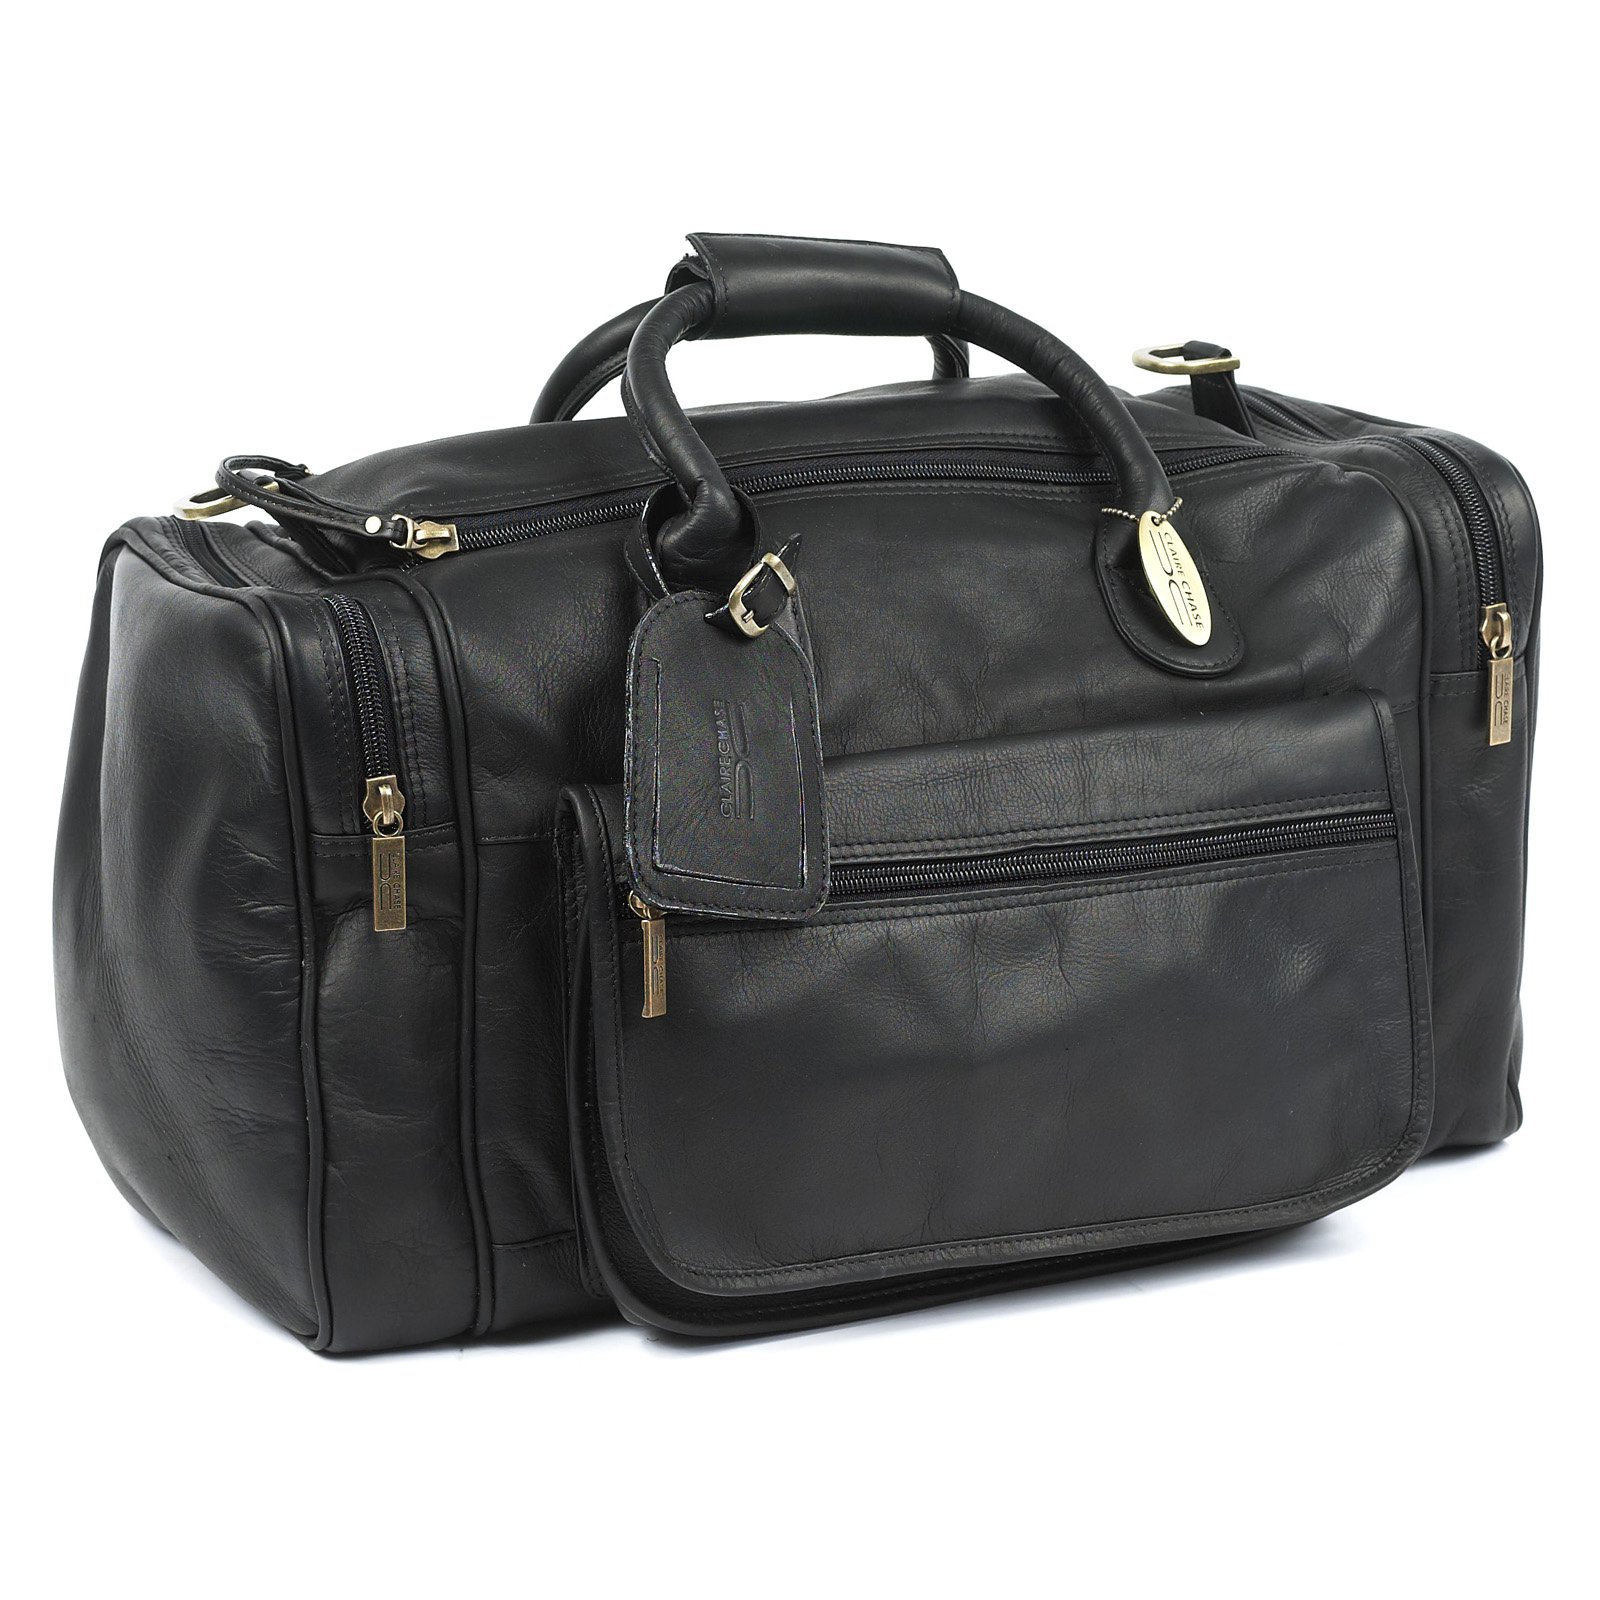 Claire Chase Classic Sports Valise Duffel Bag - Black